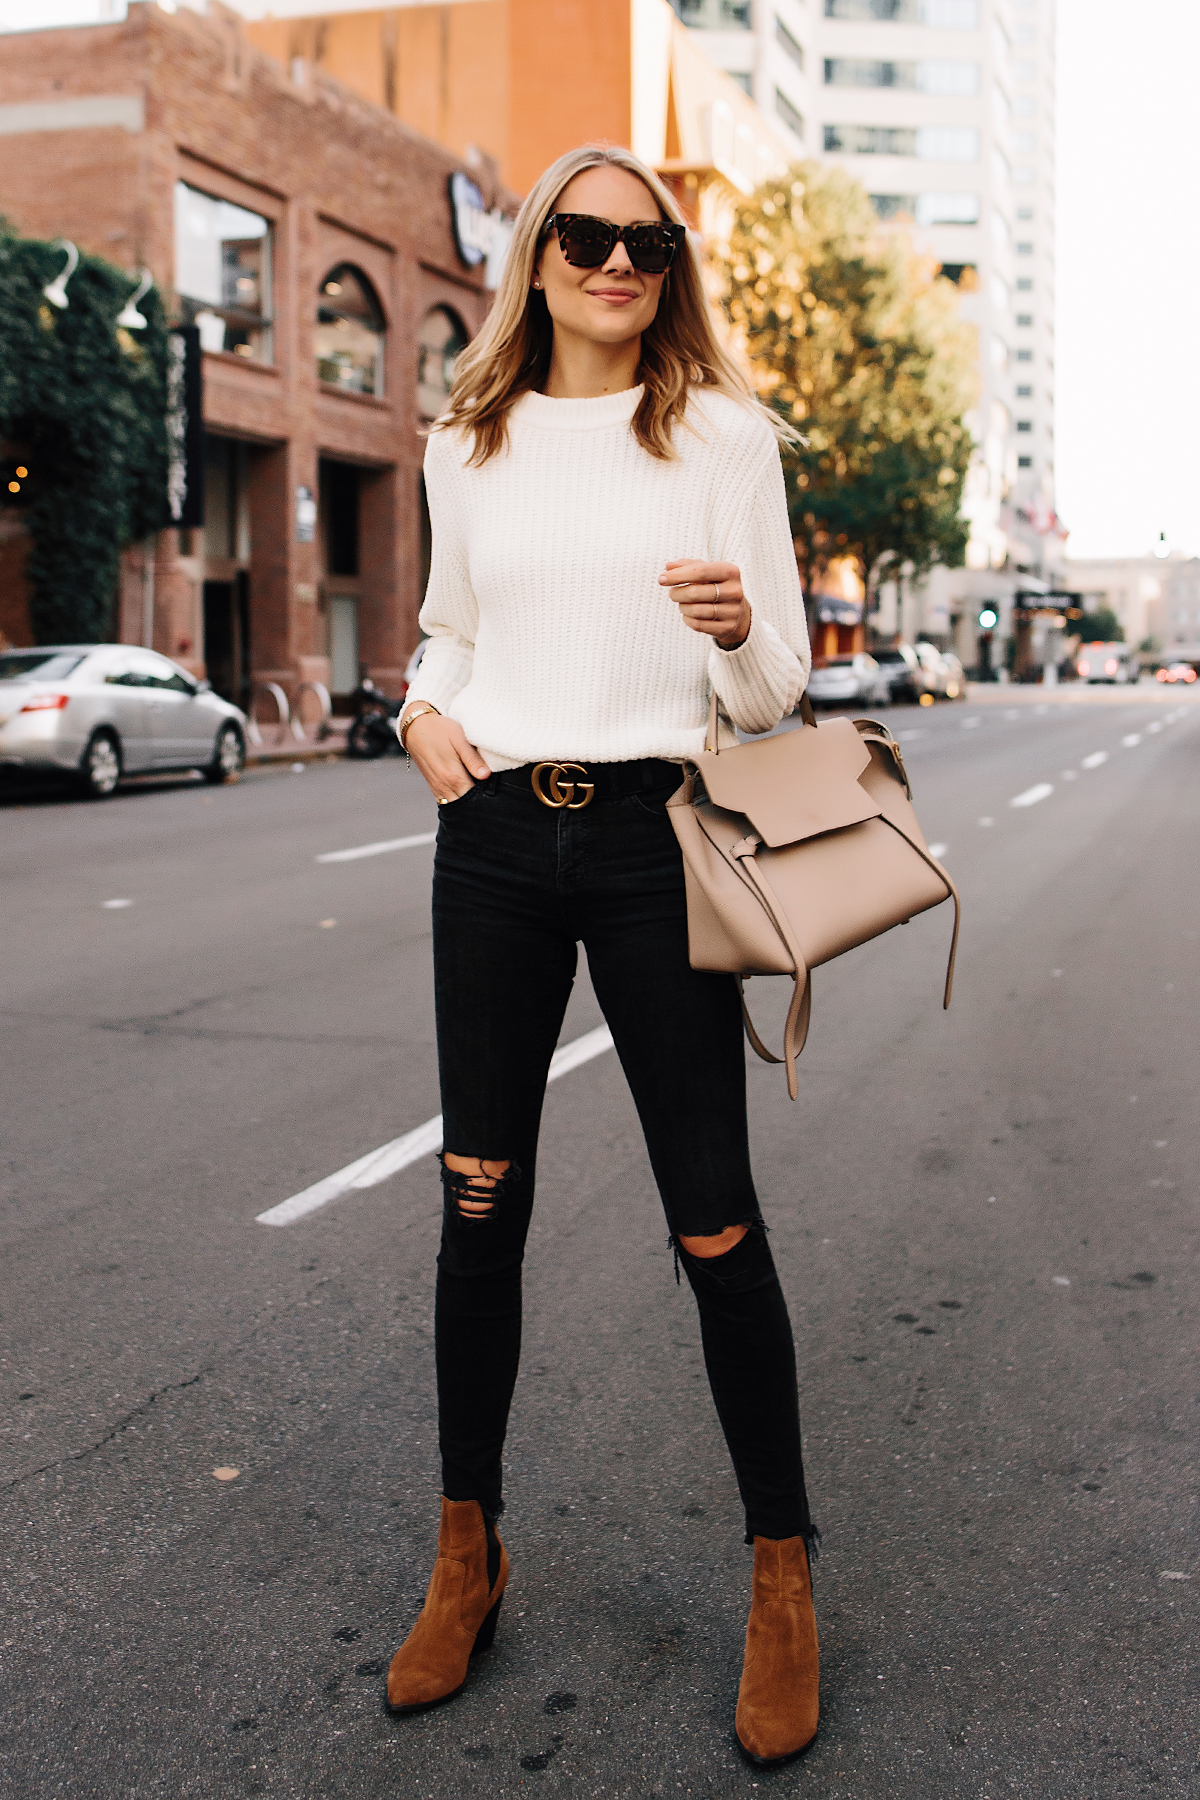 f807abbef Blonde Woman Wearing Ivory Knit Sweater Madewell Black Ripped Jeans Tan  Chelsea Booties Outfit Gucci Logo